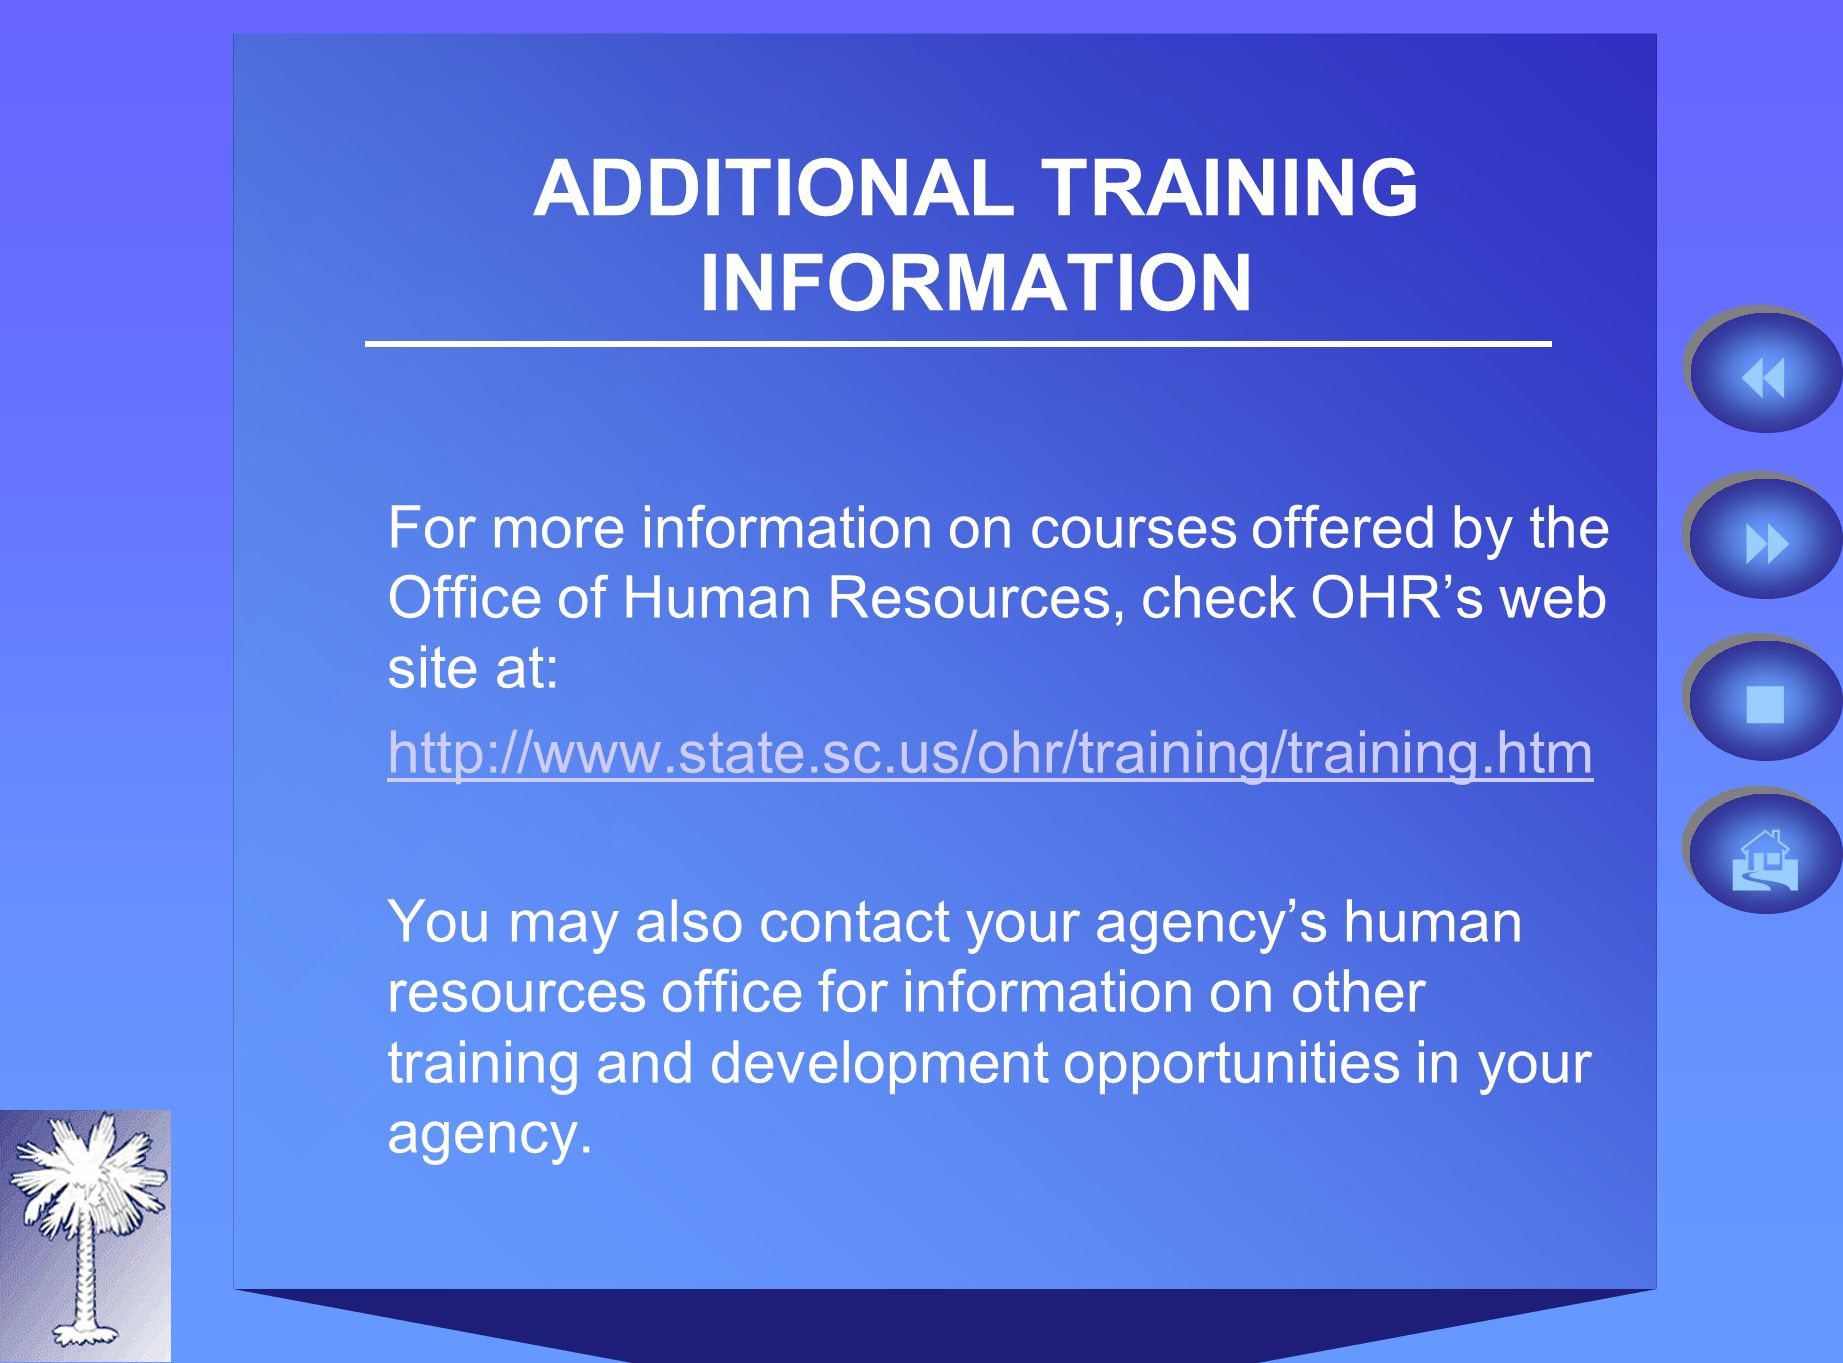 ADDITIONAL TRAINING INFORMATION For more information on courses offered by the Office of Human Resources, check OHRs web site at:   You may also contact your agencys human resources office for information on other training and development opportunities in your agency.